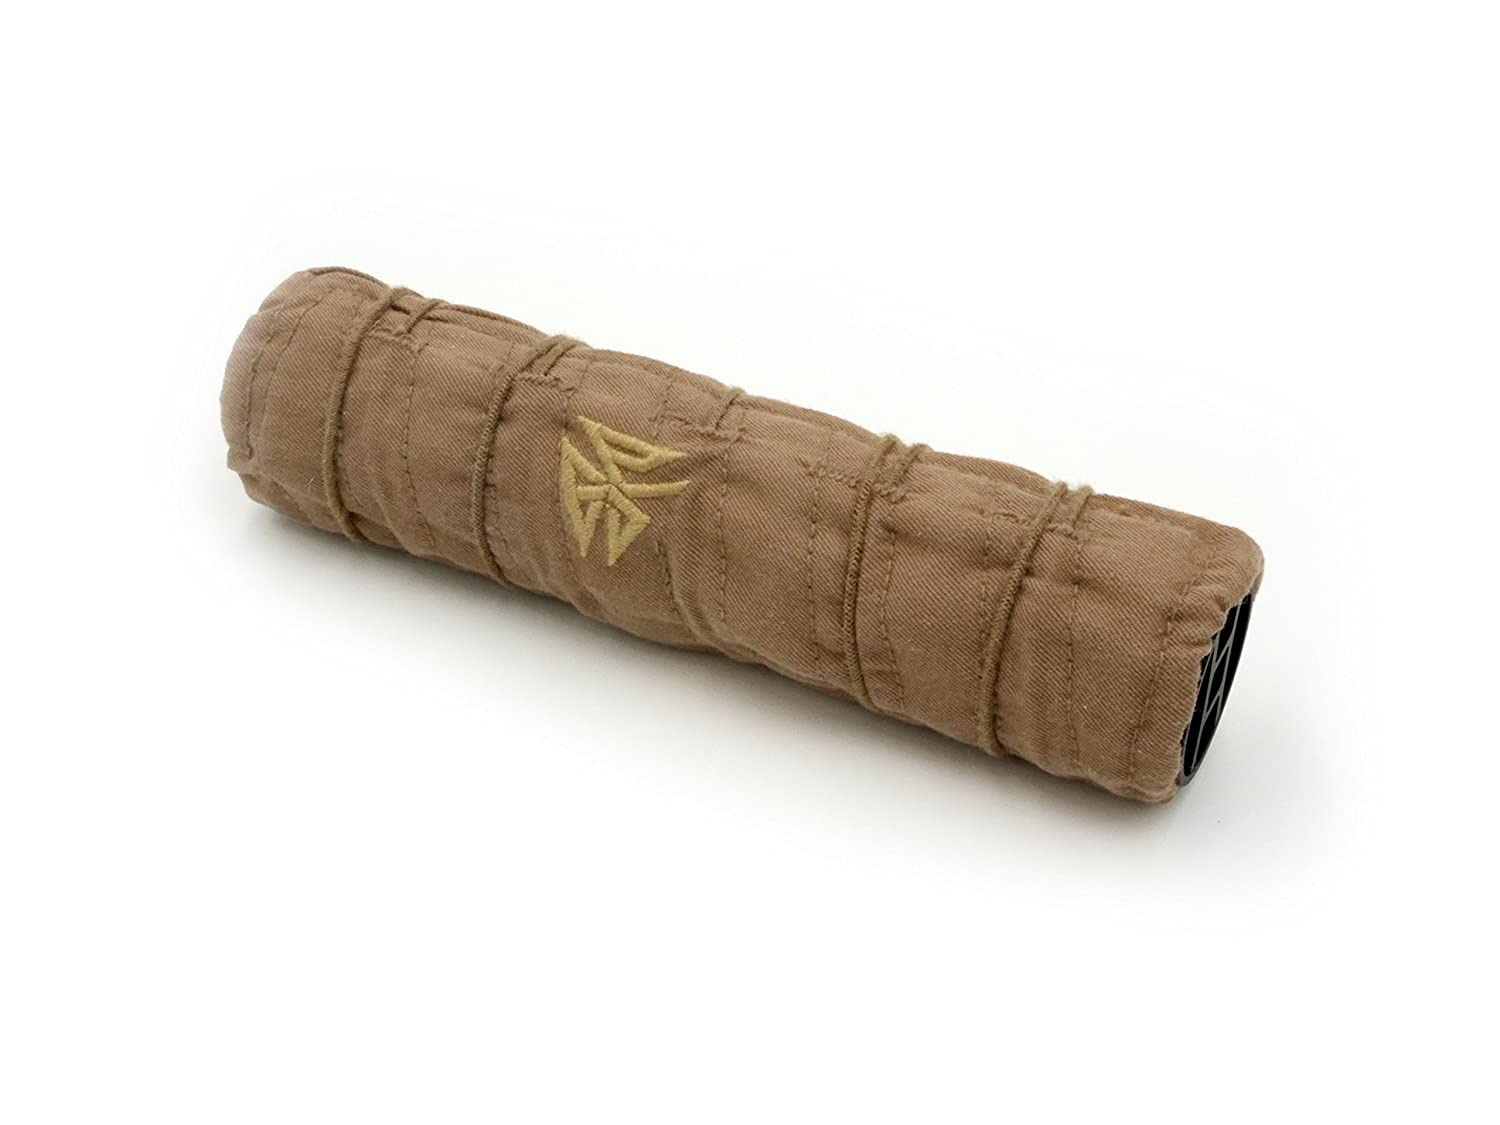 2.Burn-Proof Gear Suppressor Cover Medium